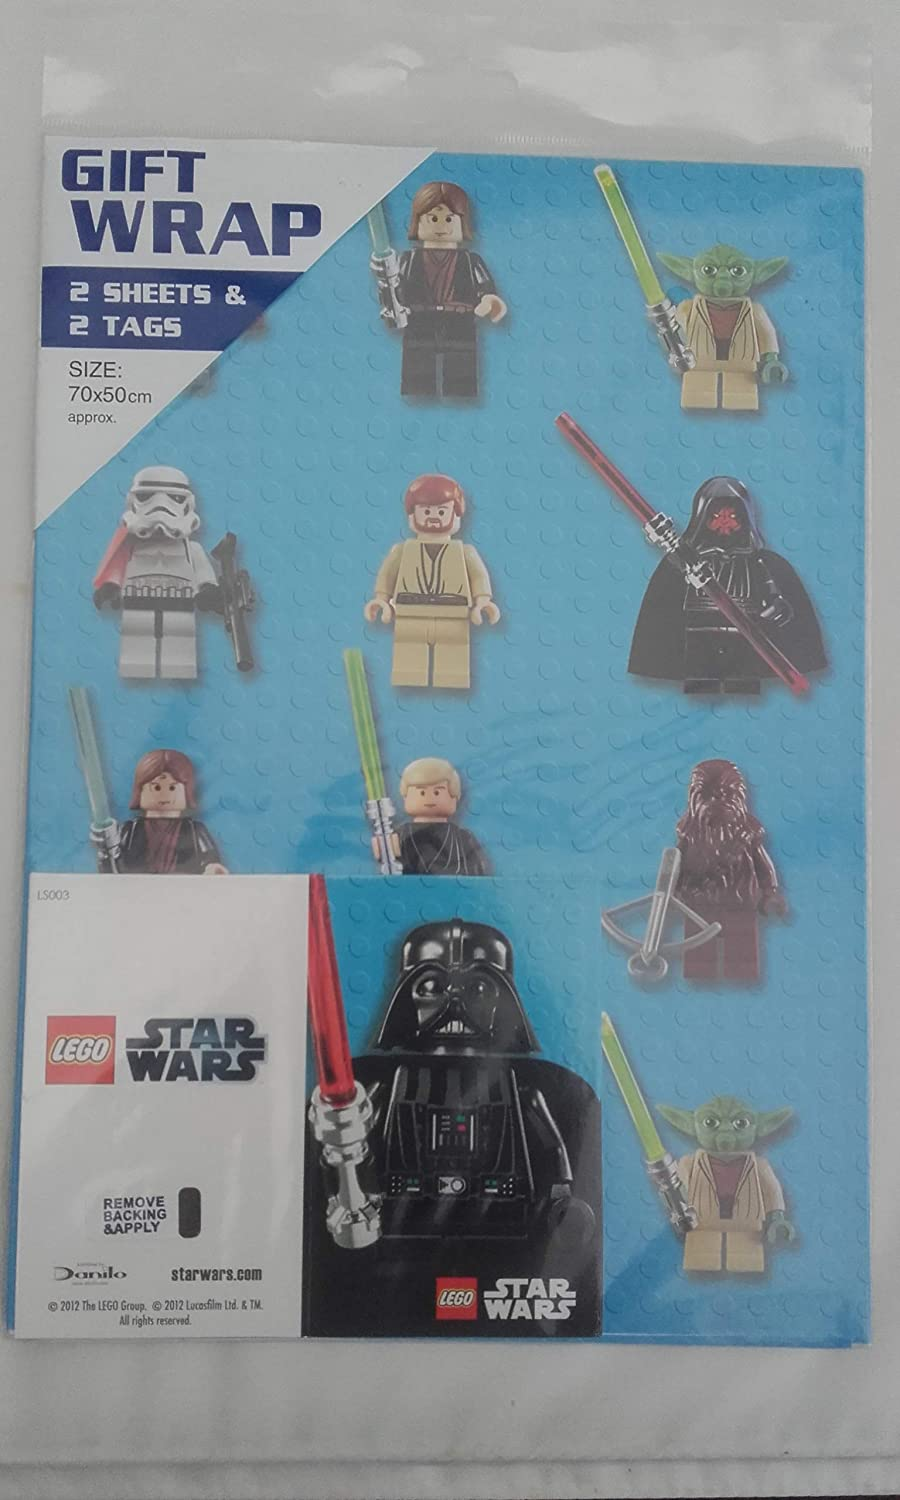 Lego Star Wars - Giftwrap (2 Sheets Folded) and Tags (2)